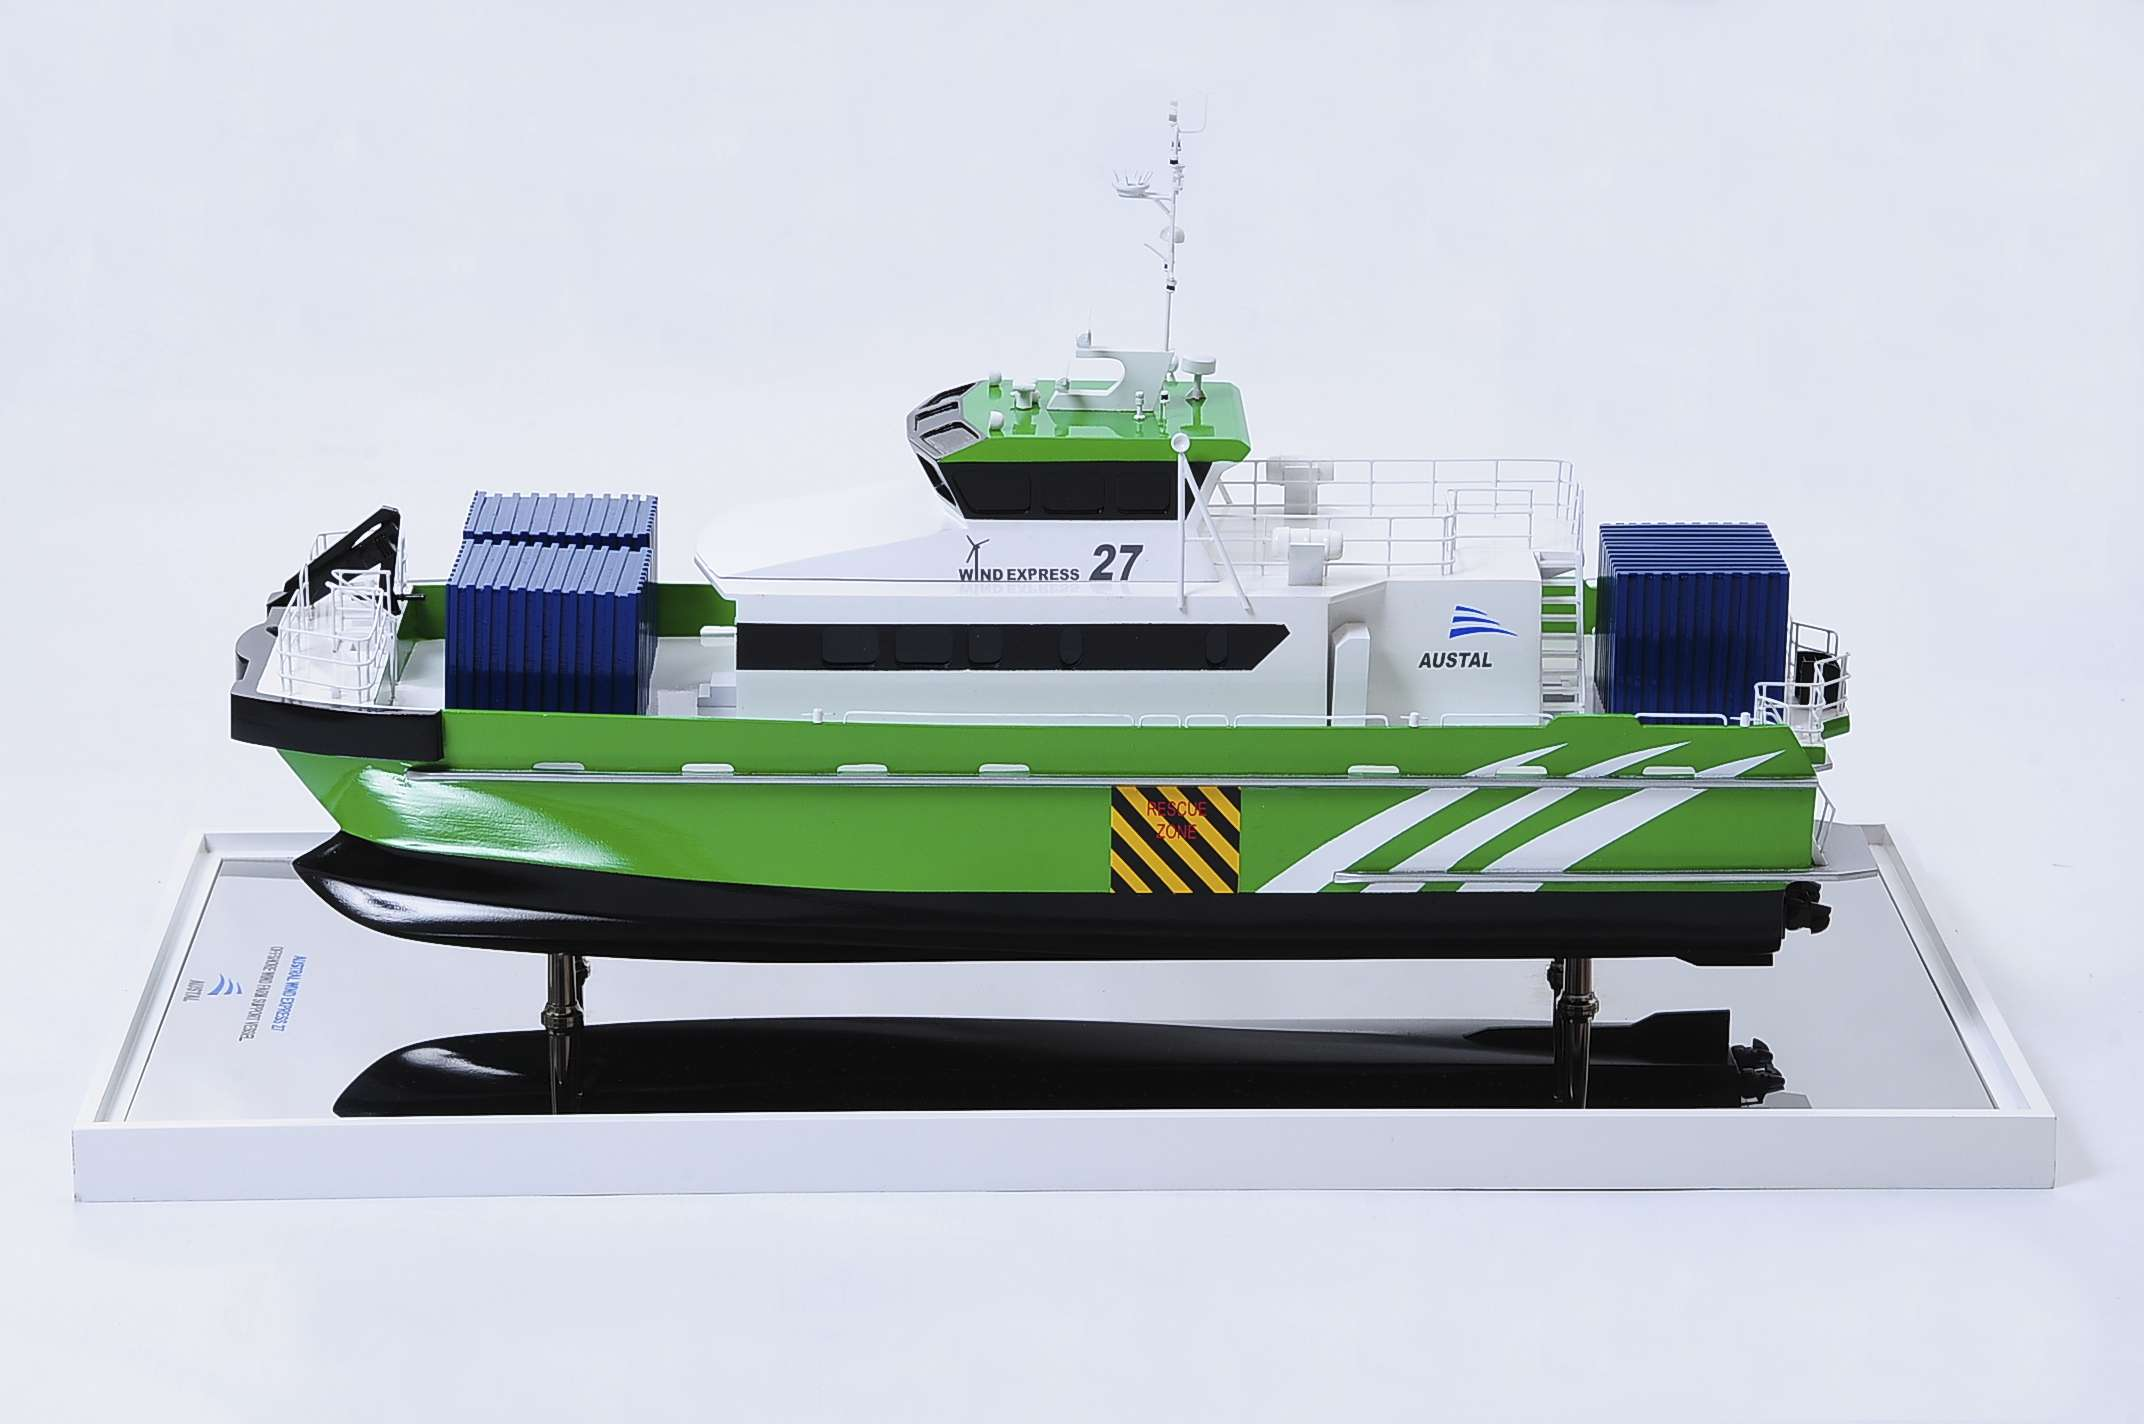 1440-4945-Wind-Express-27-Catamaran-Model